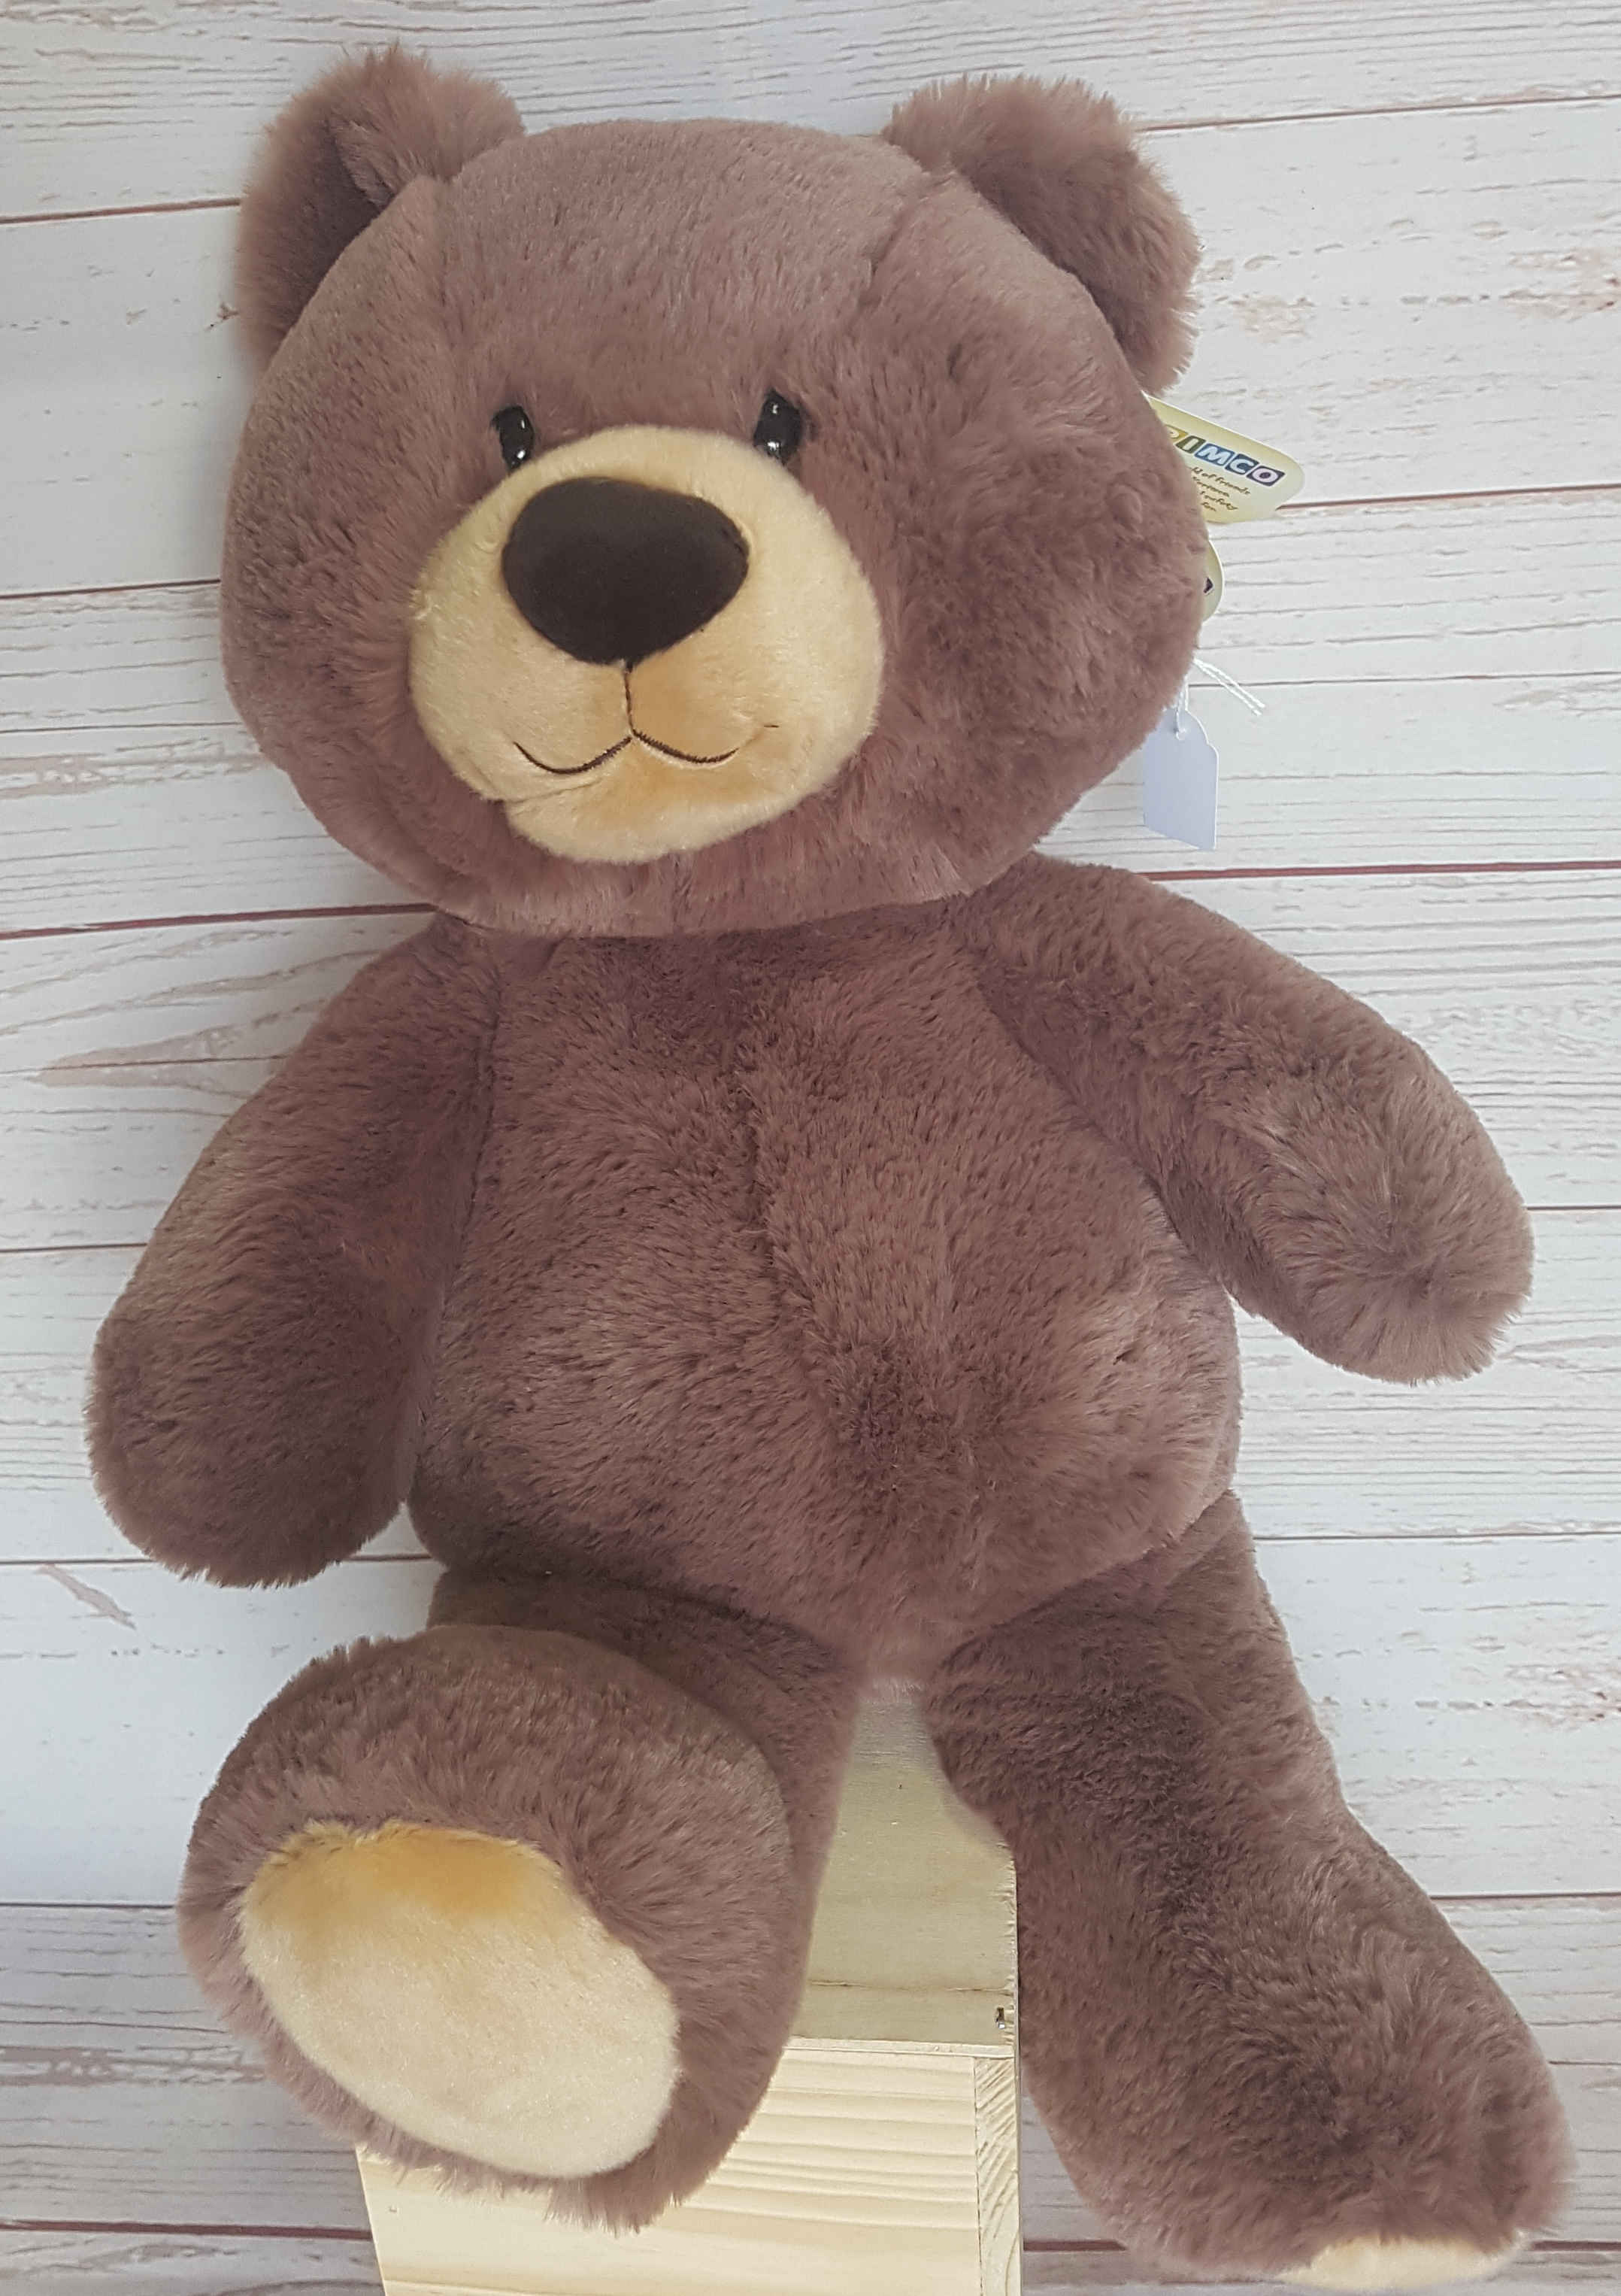 POOKIE, A MEDIUM BEAR,  SOFT AND CUDDLY, SUPER CUTE LET POOKIE BRING SOME BEAR CUDDLES INTO THE RECIPIENTS LIFE. .